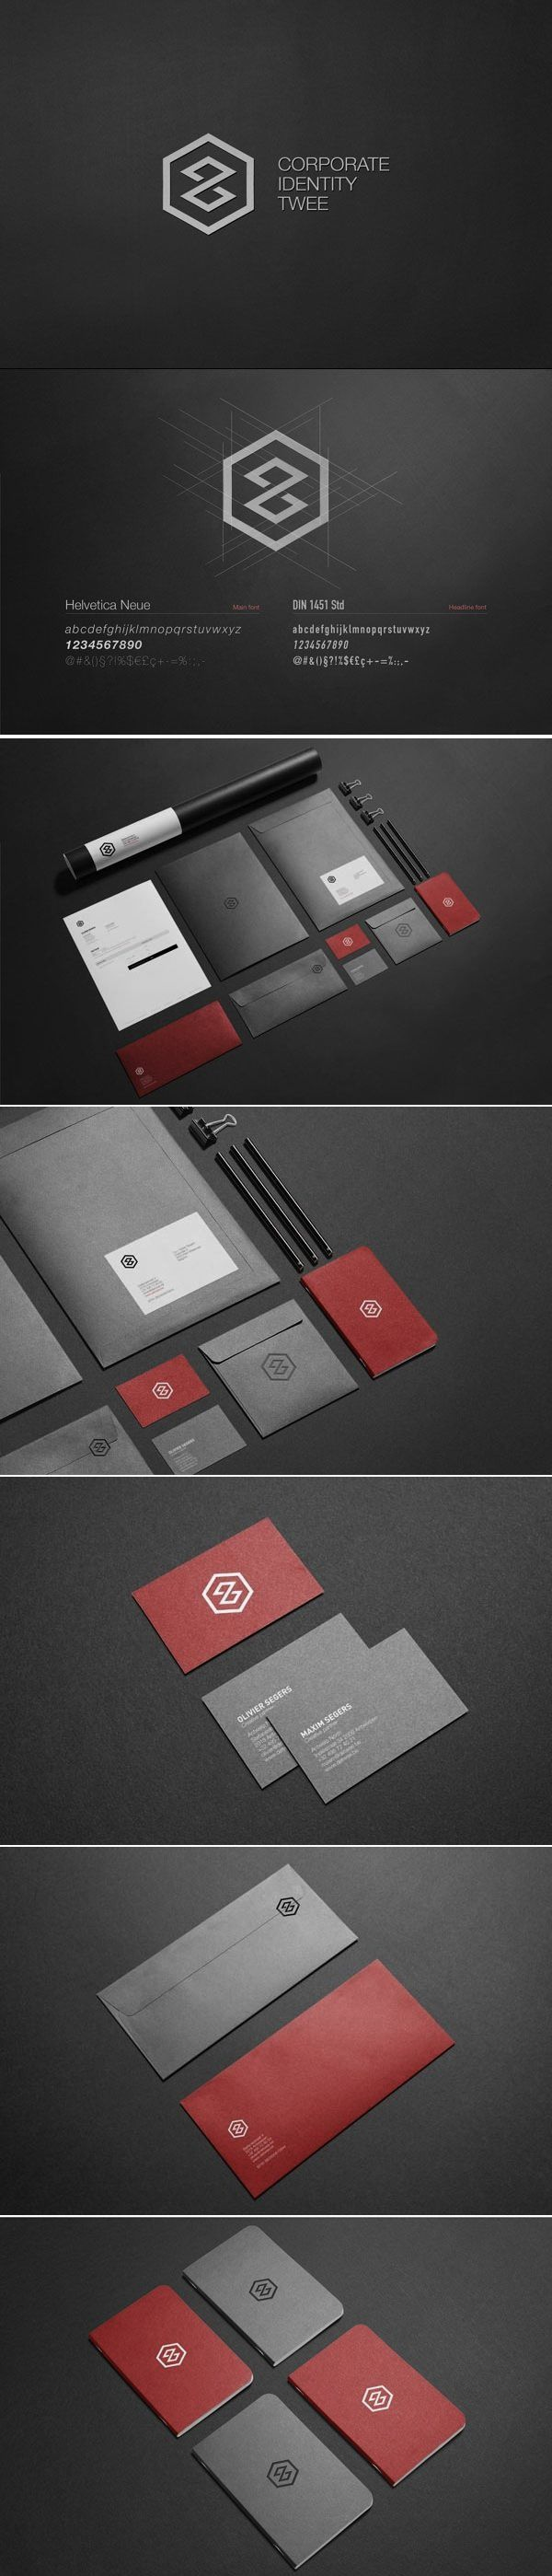 Twee Corporate Identity and Logo Design.